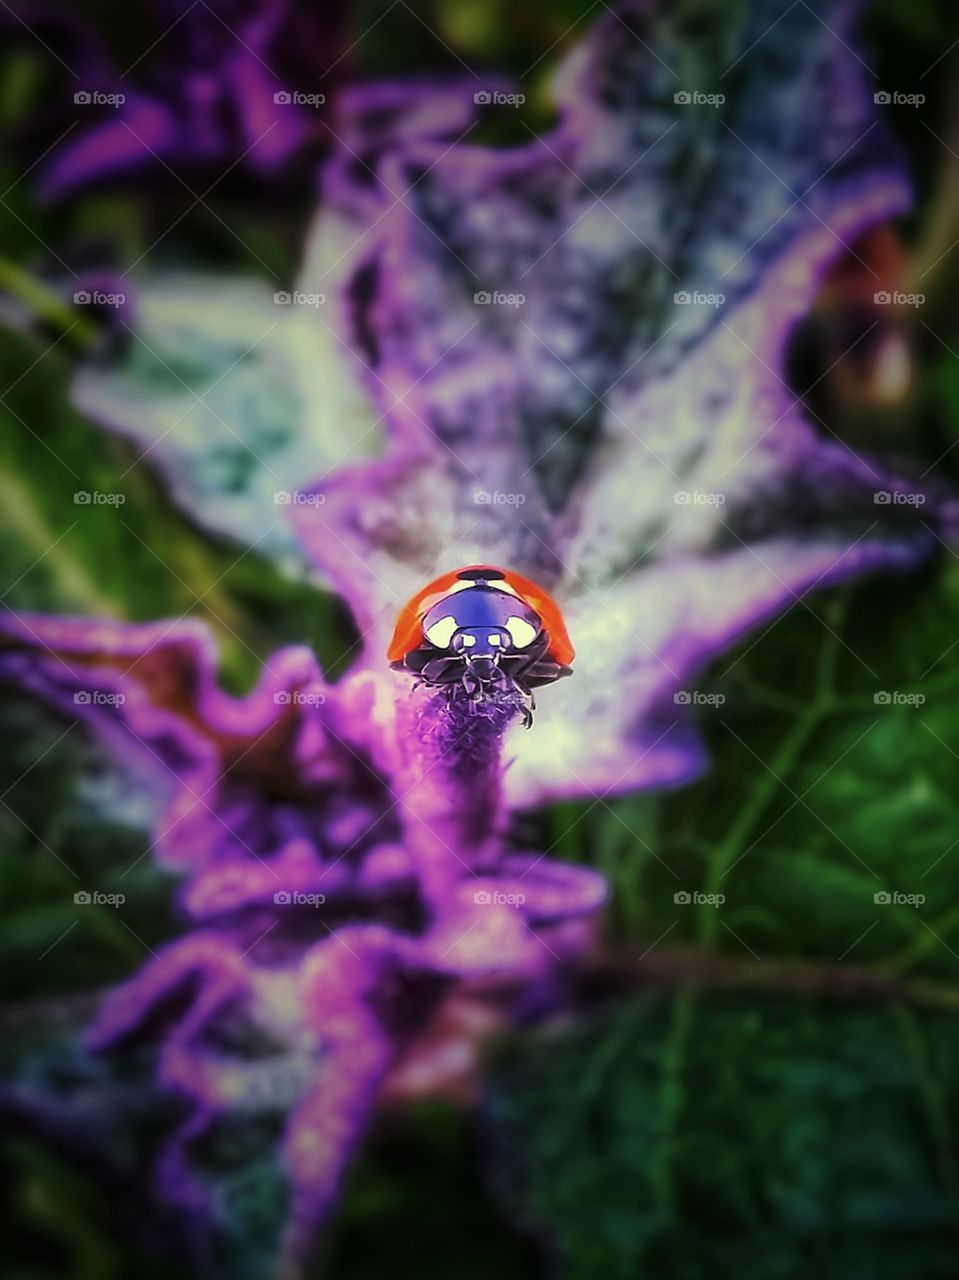 Ladybug on a purple and green plant close up flora and fauna